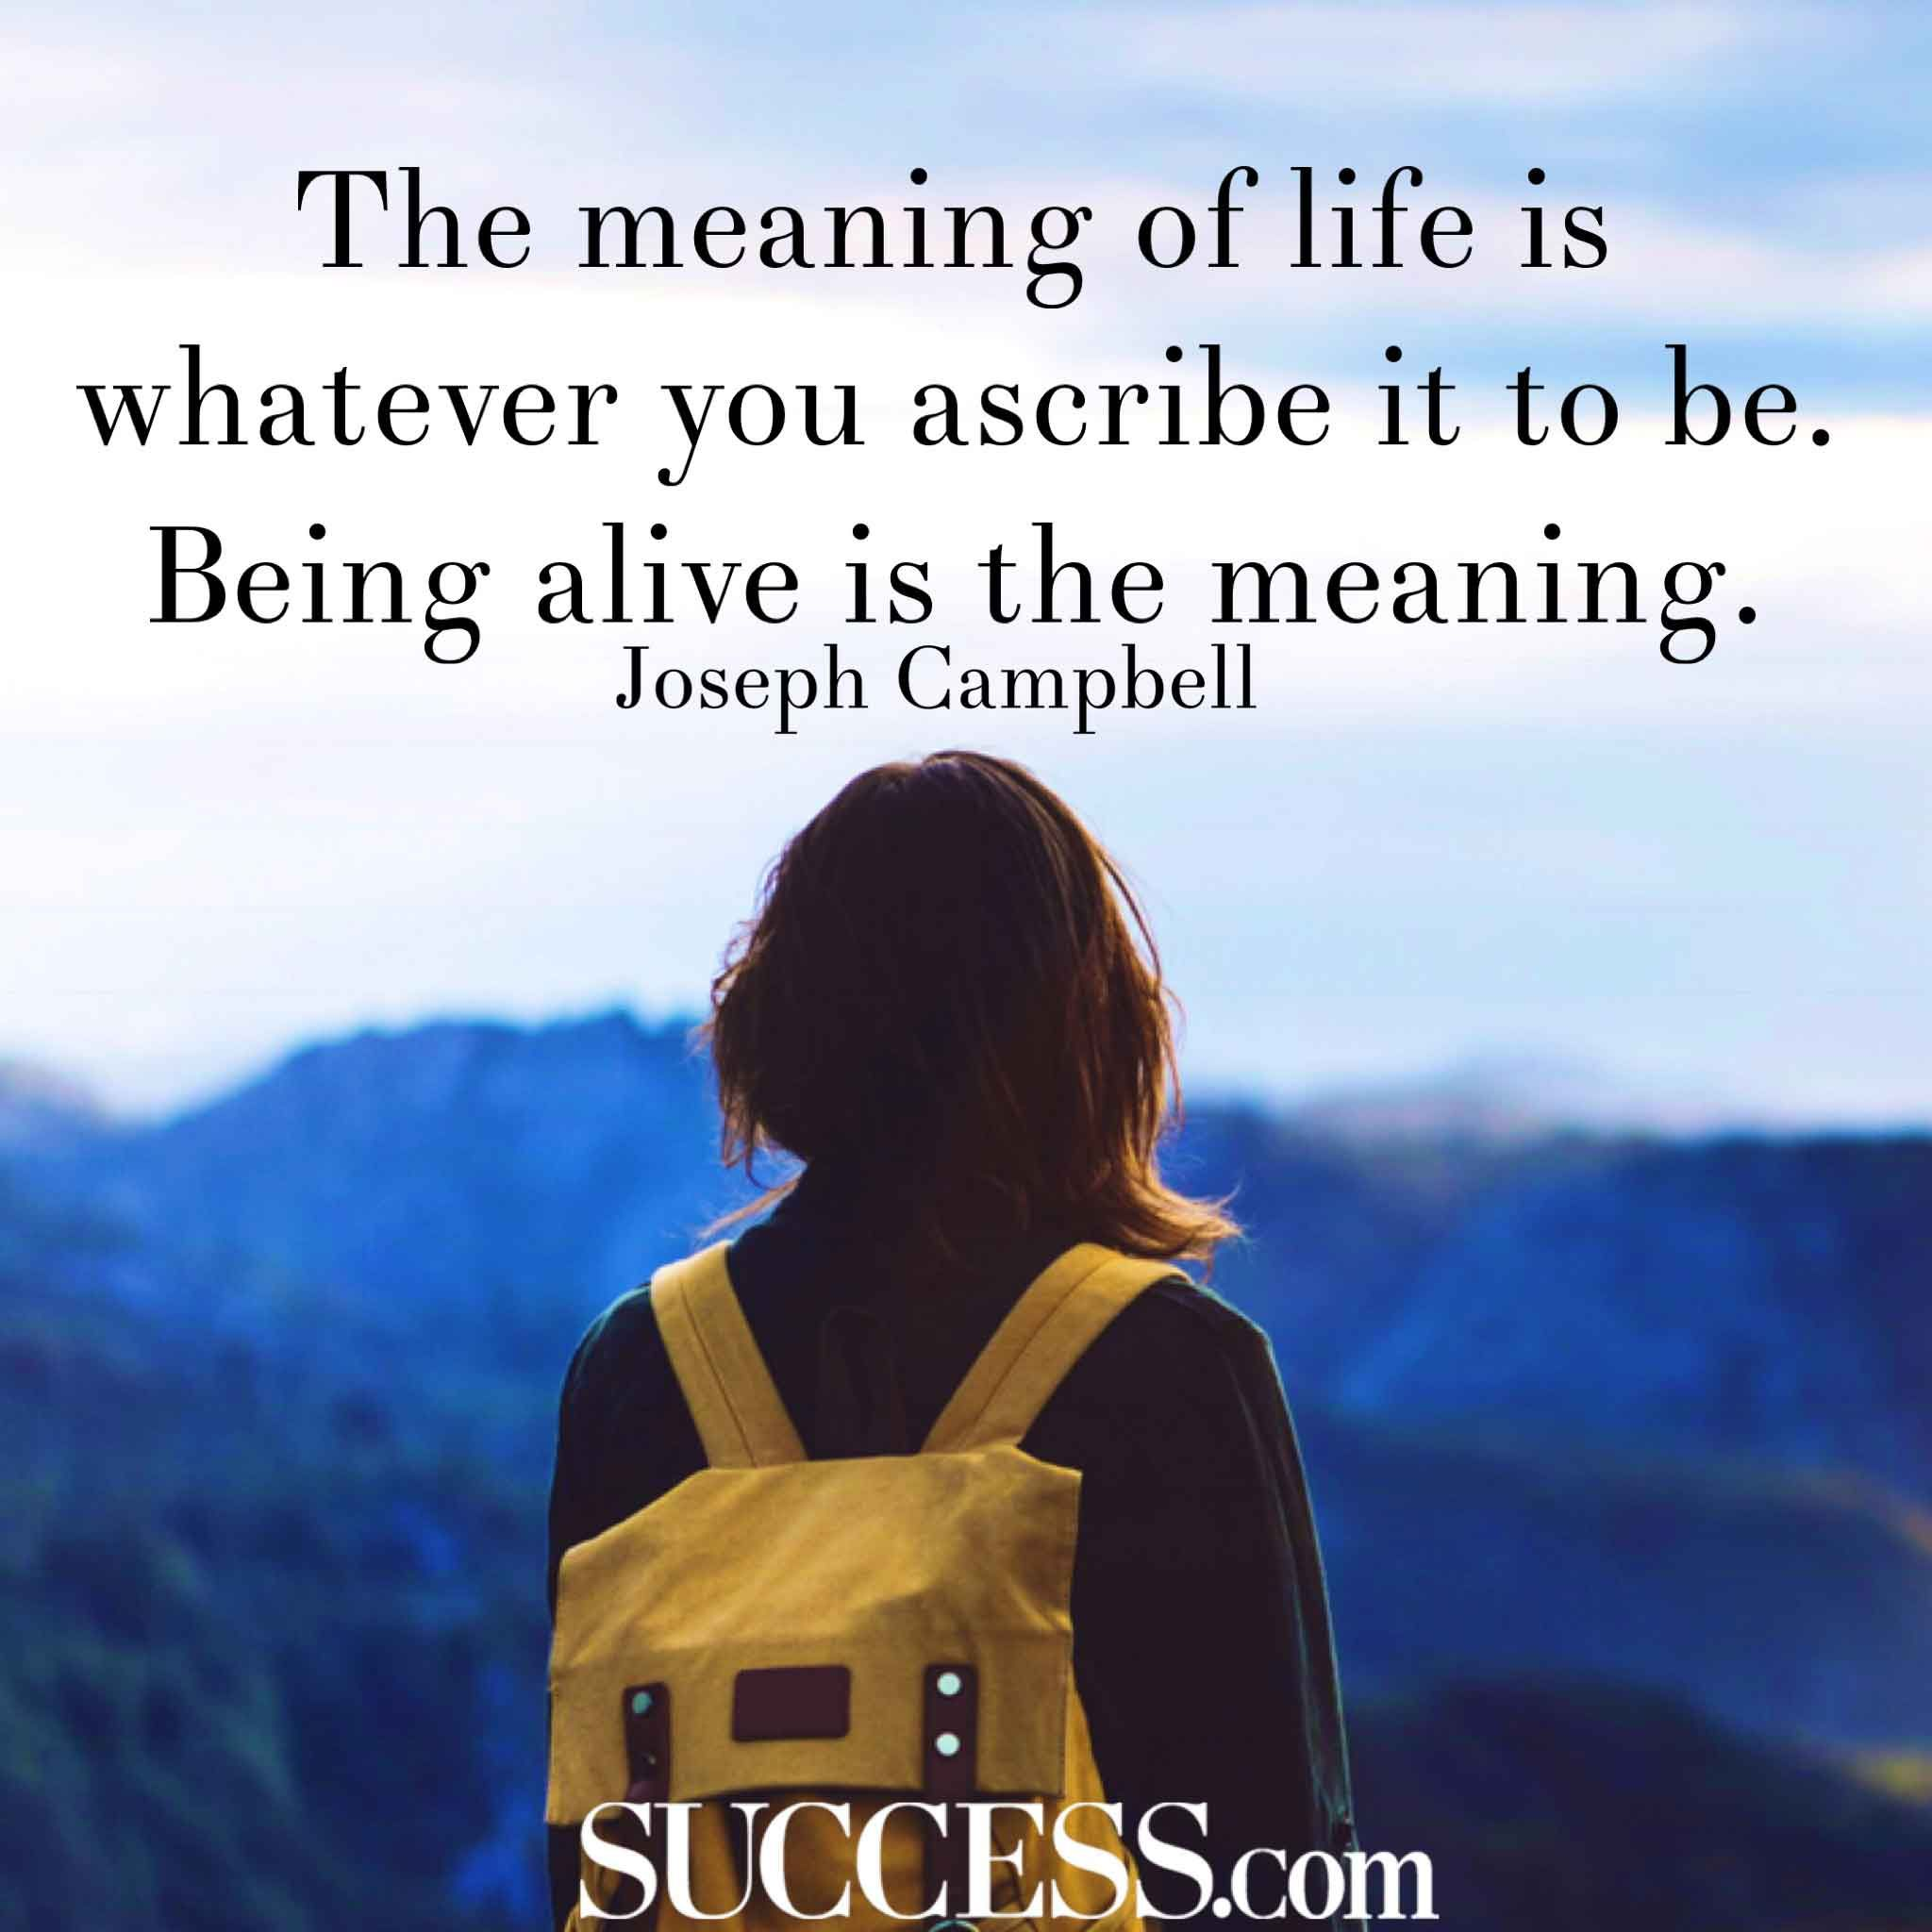 Wise Quotes About Life Simple The Meaning Of Life In 15 Wise Quotes  Success  Self Help . Review